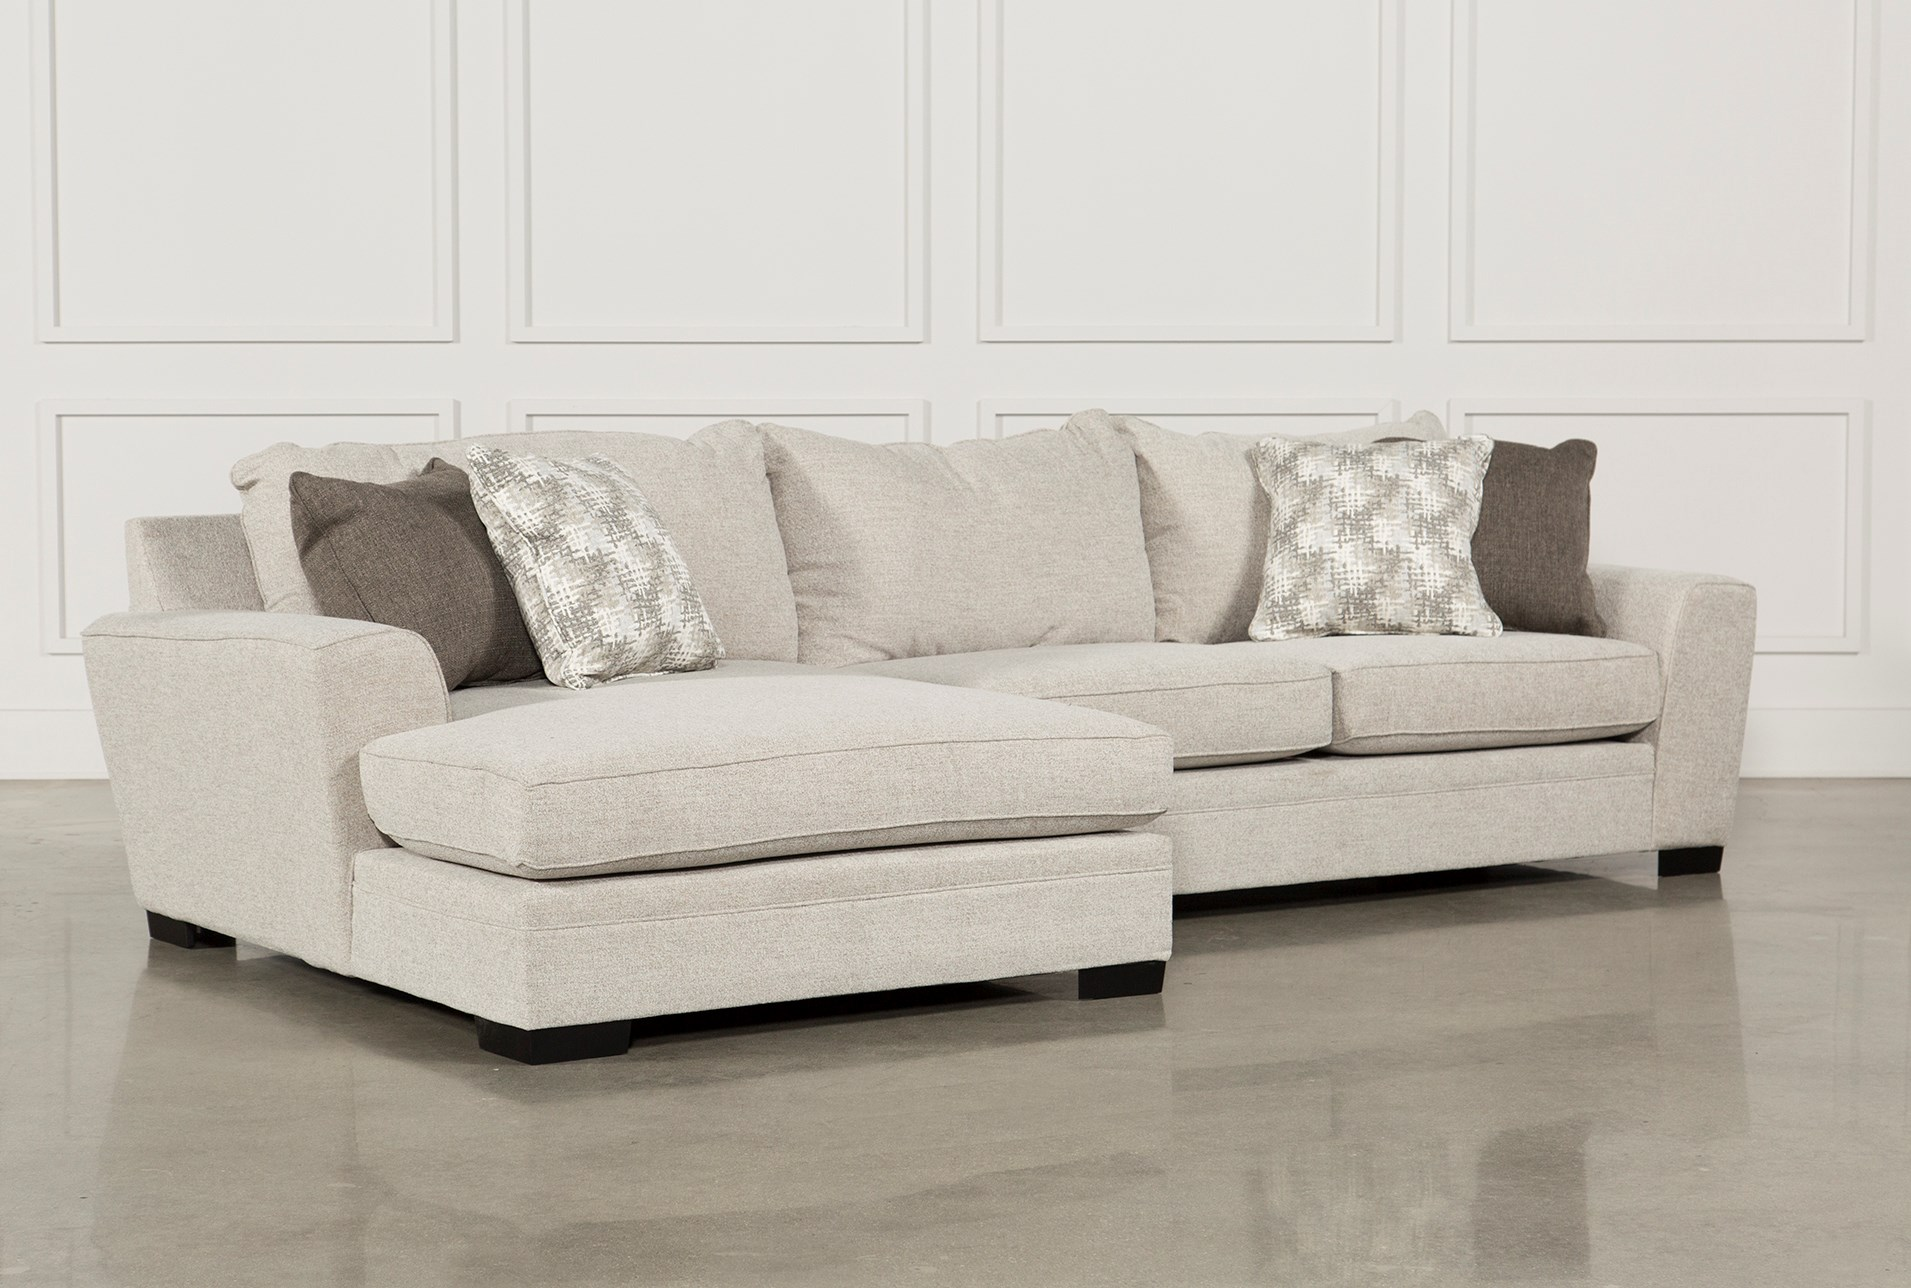 Large Sectional Couch With Delano Piece Sectional Wlaf Oversized Chaise Sectionals Sofas Living Spaces